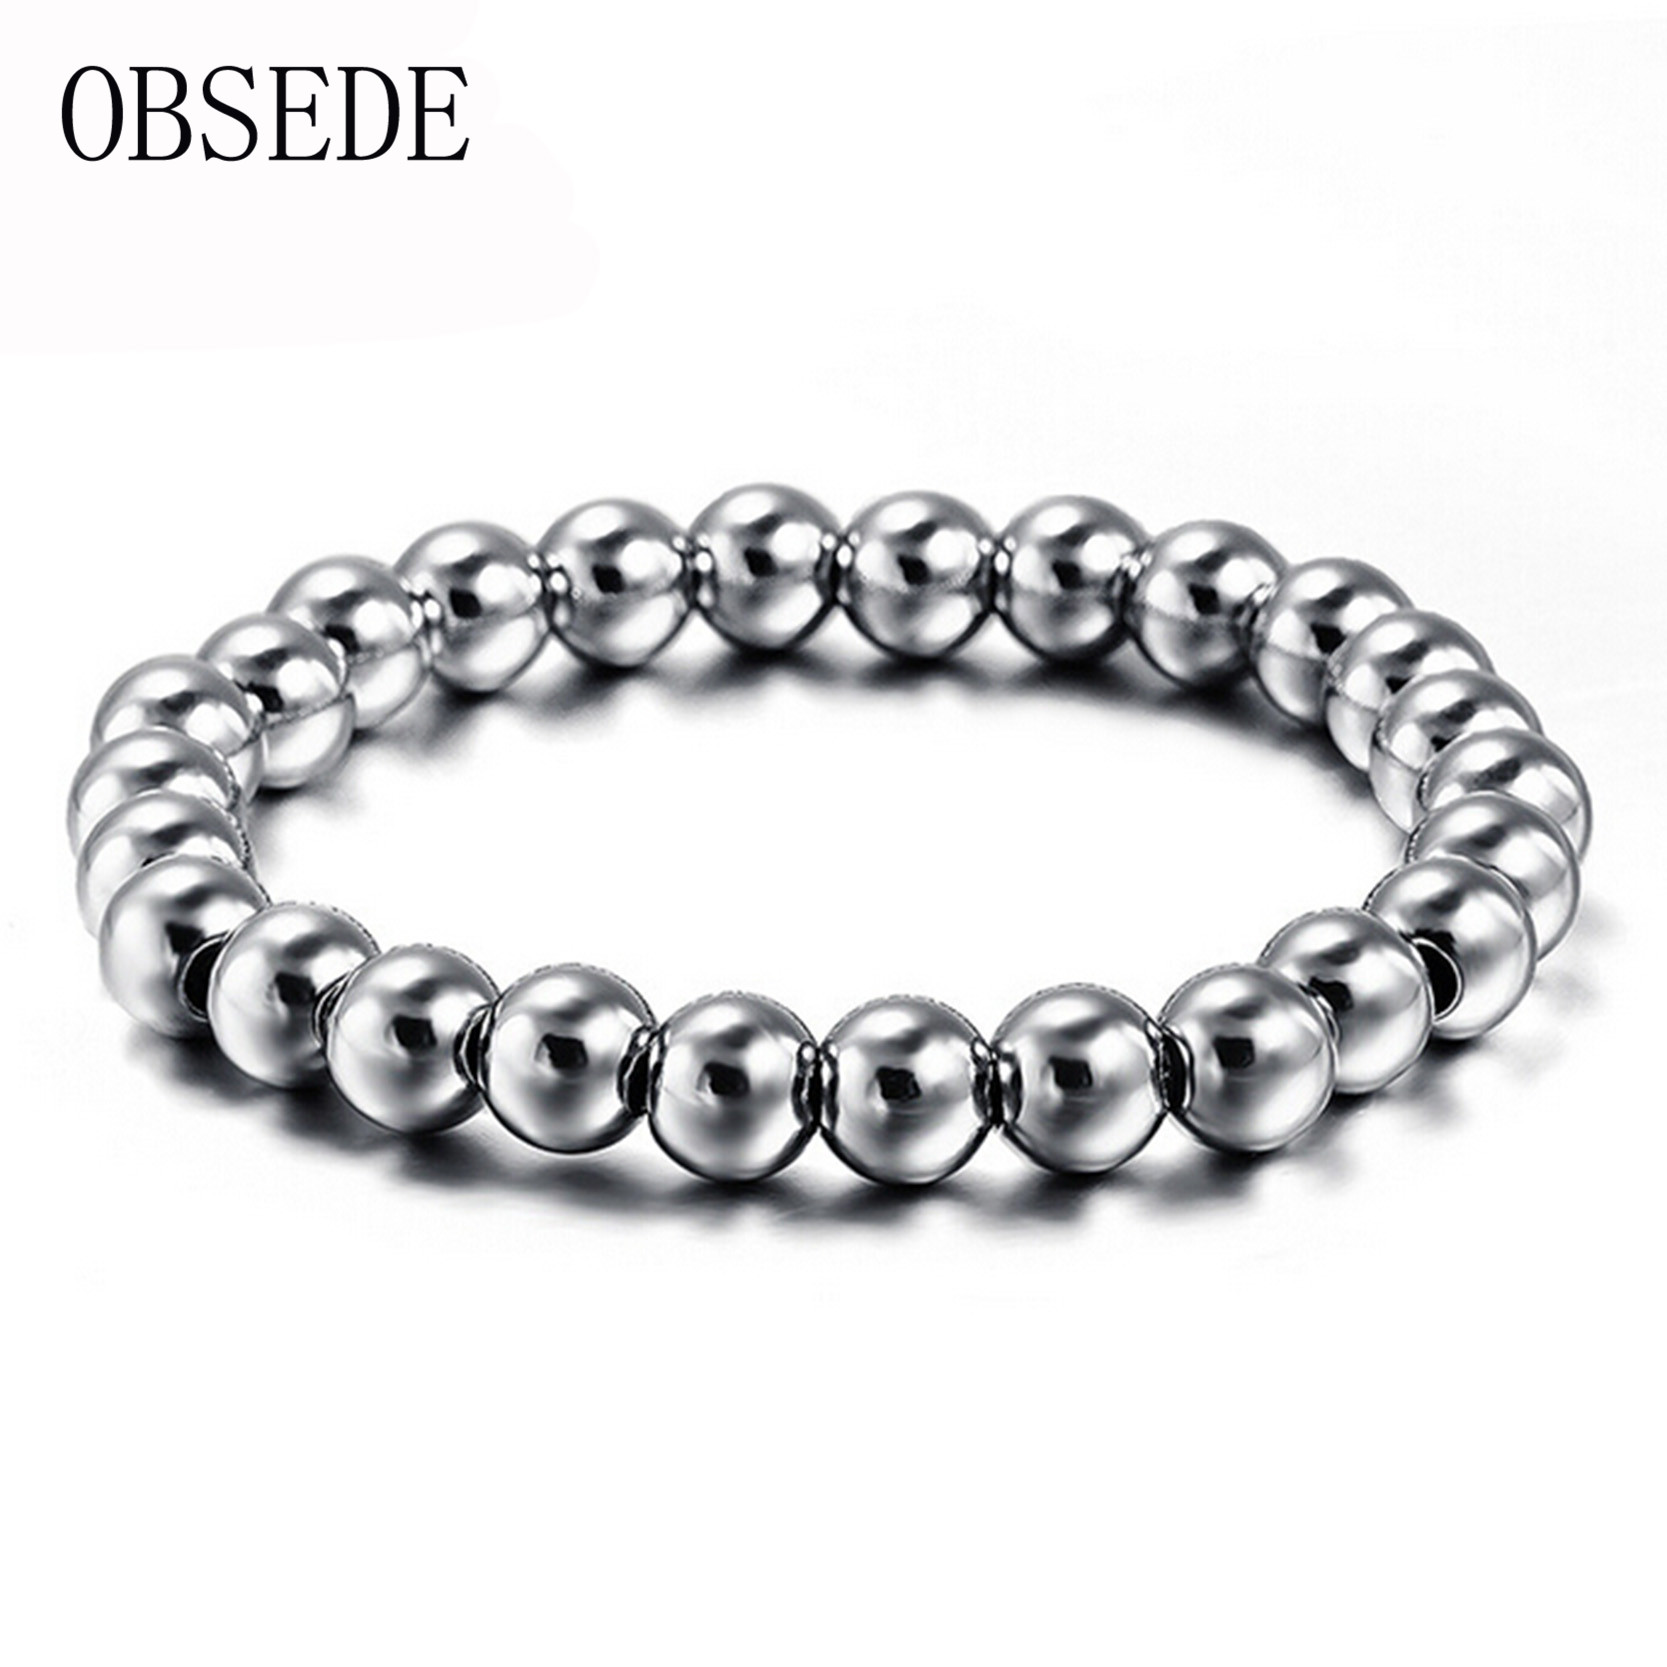 Popular Steel Charms for Bracelet Buy Cheap Steel Charms for